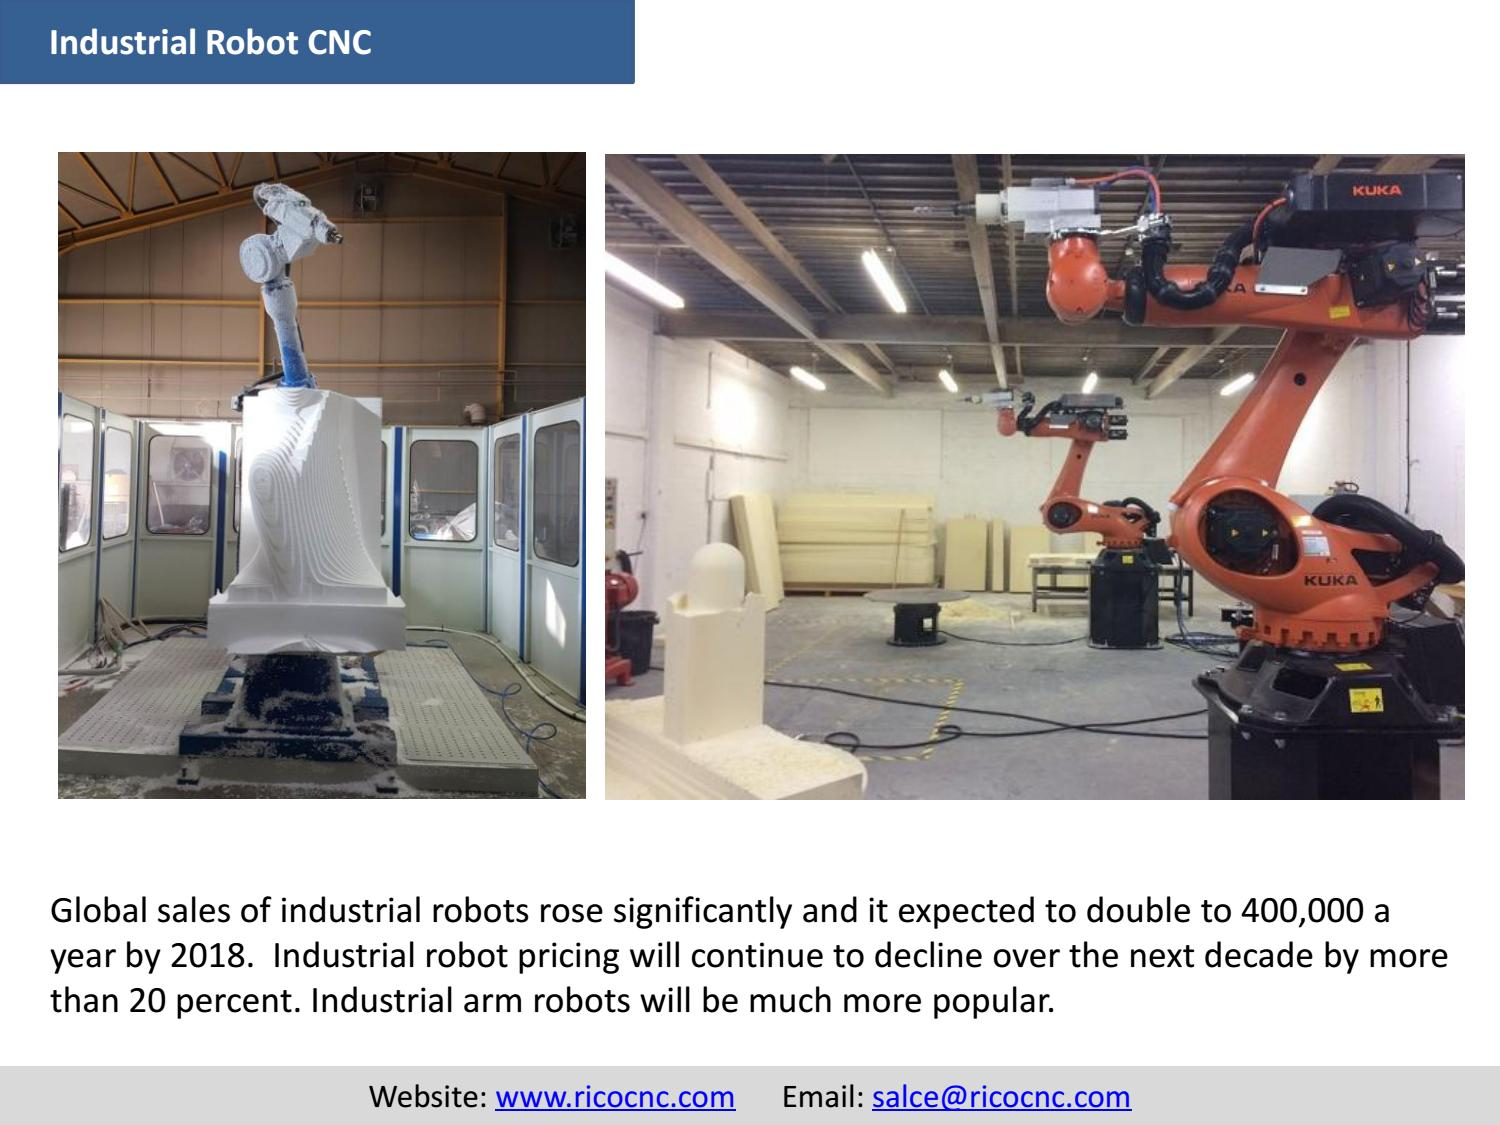 Industrial robot cnc equipment arm tooling ricocnc by Salce Smith